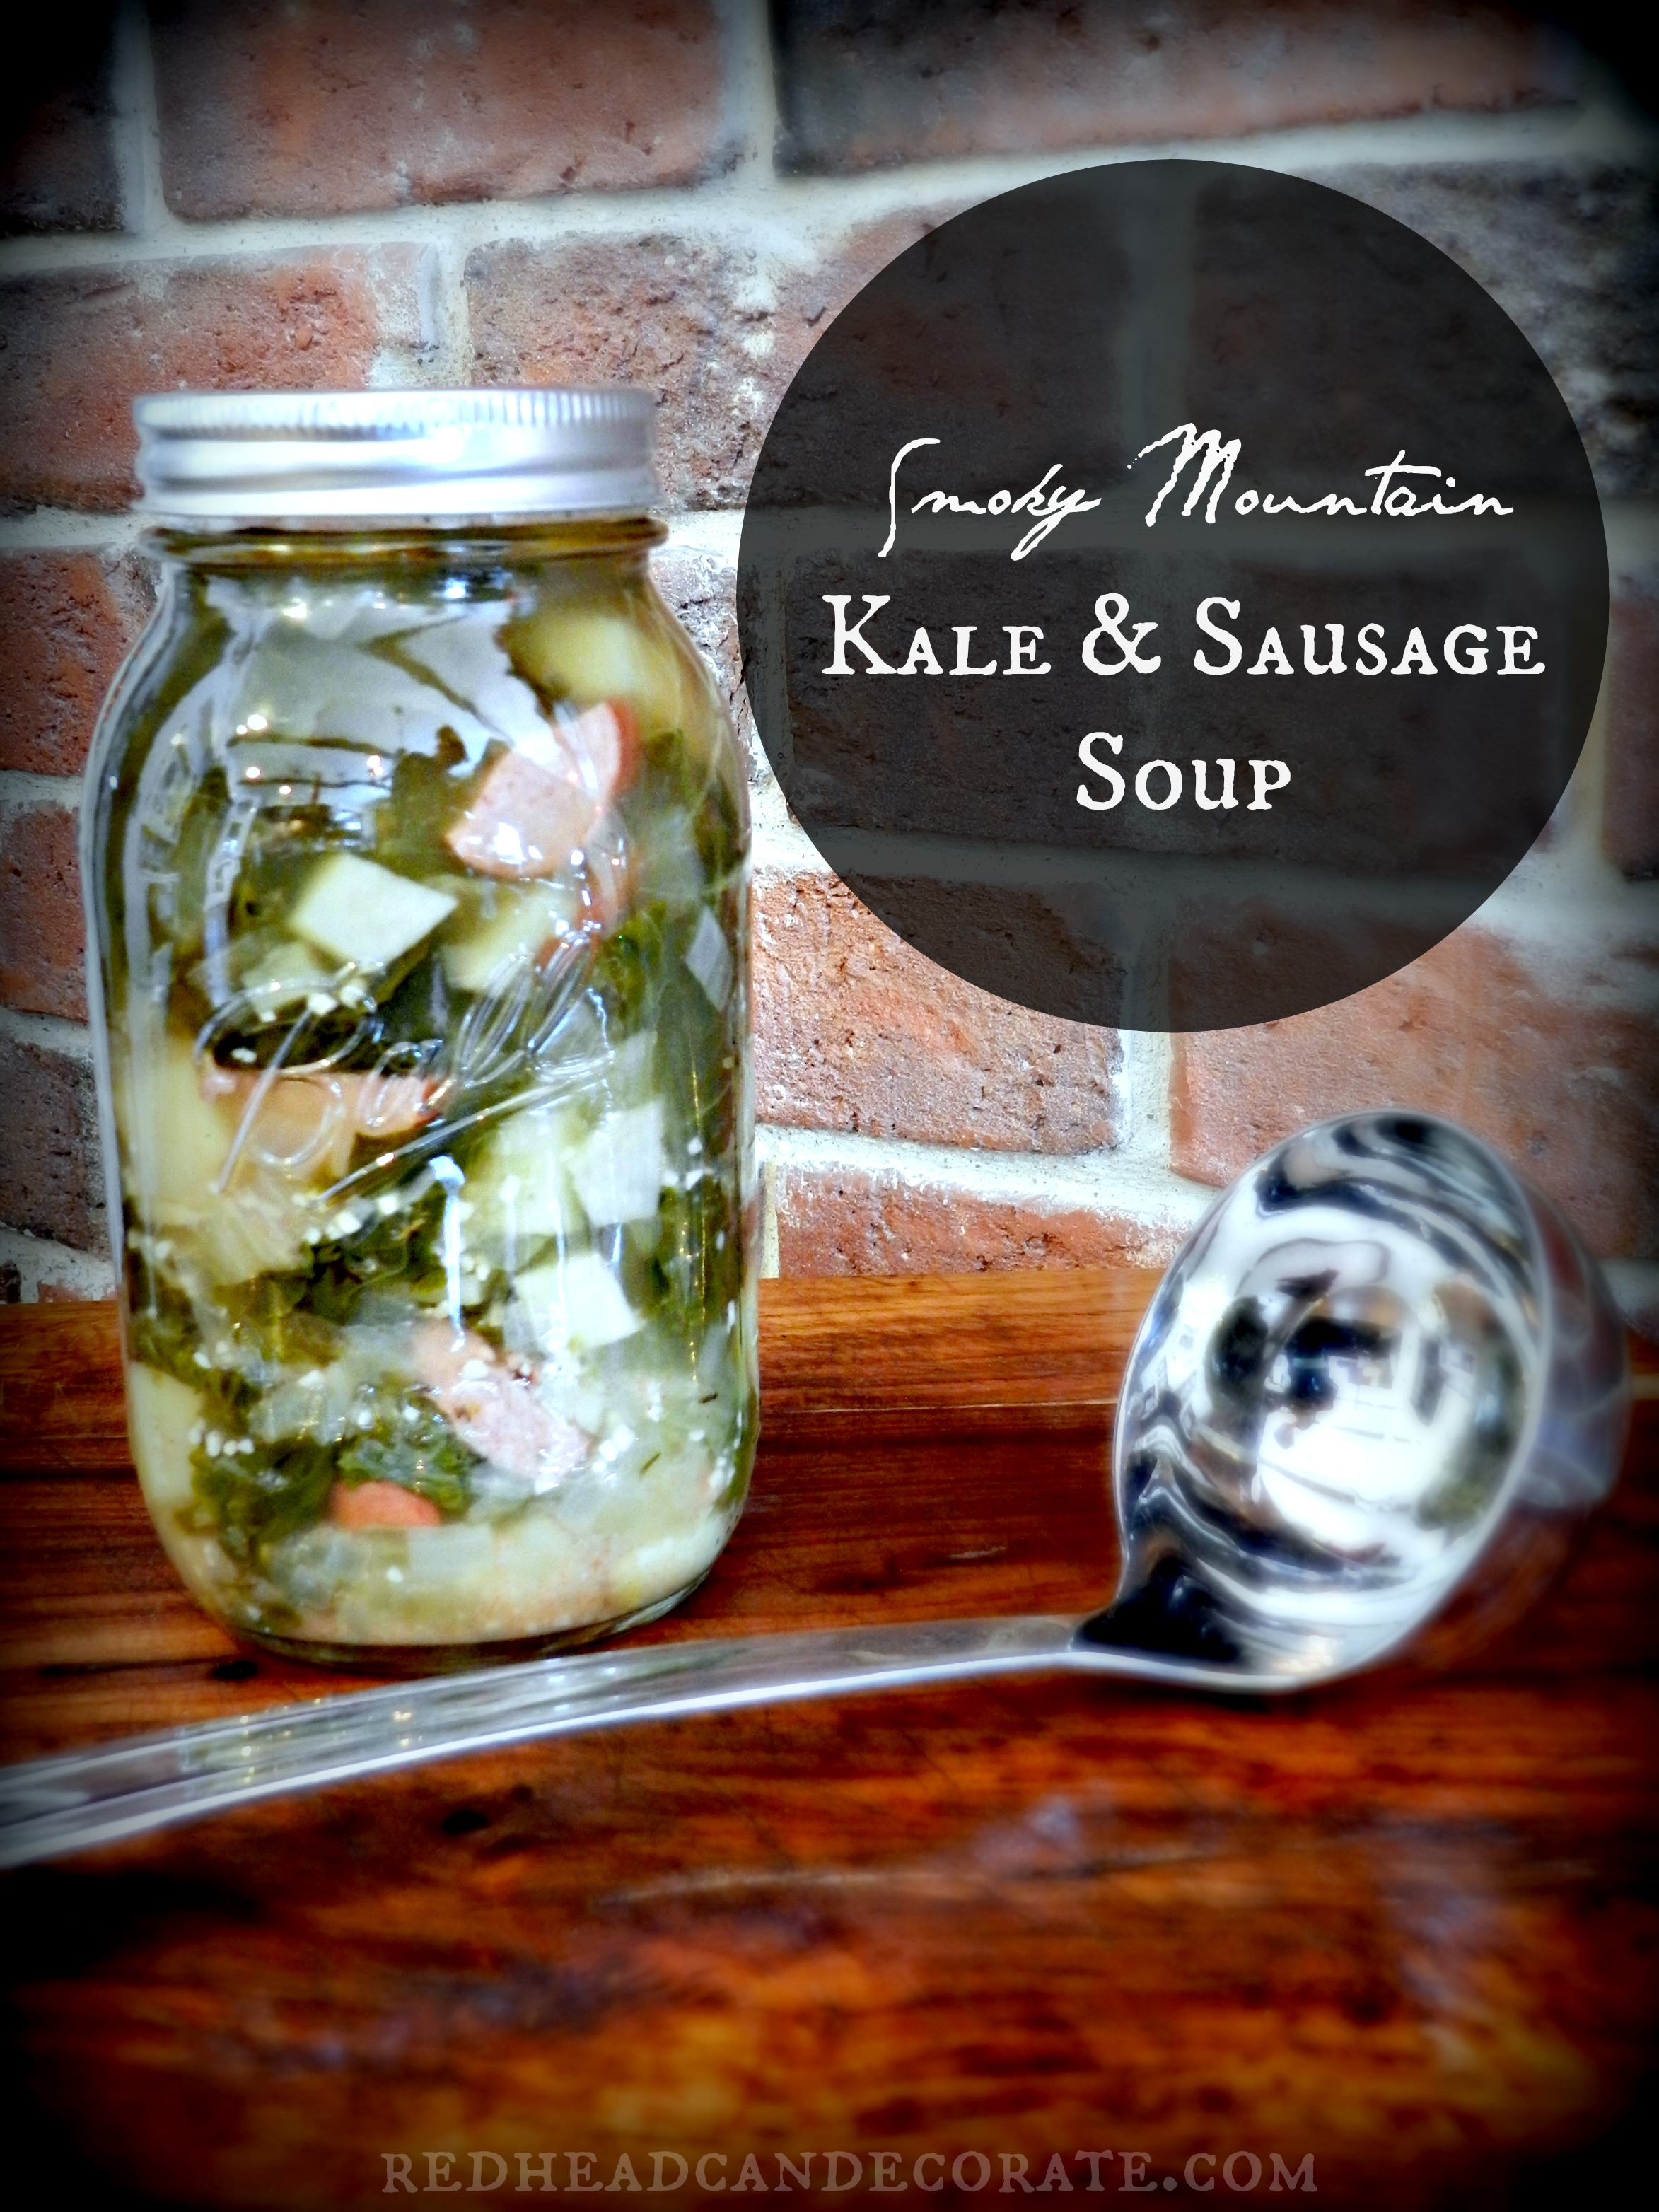 Smoky Mountain Kale & Sausage Soup-yum!